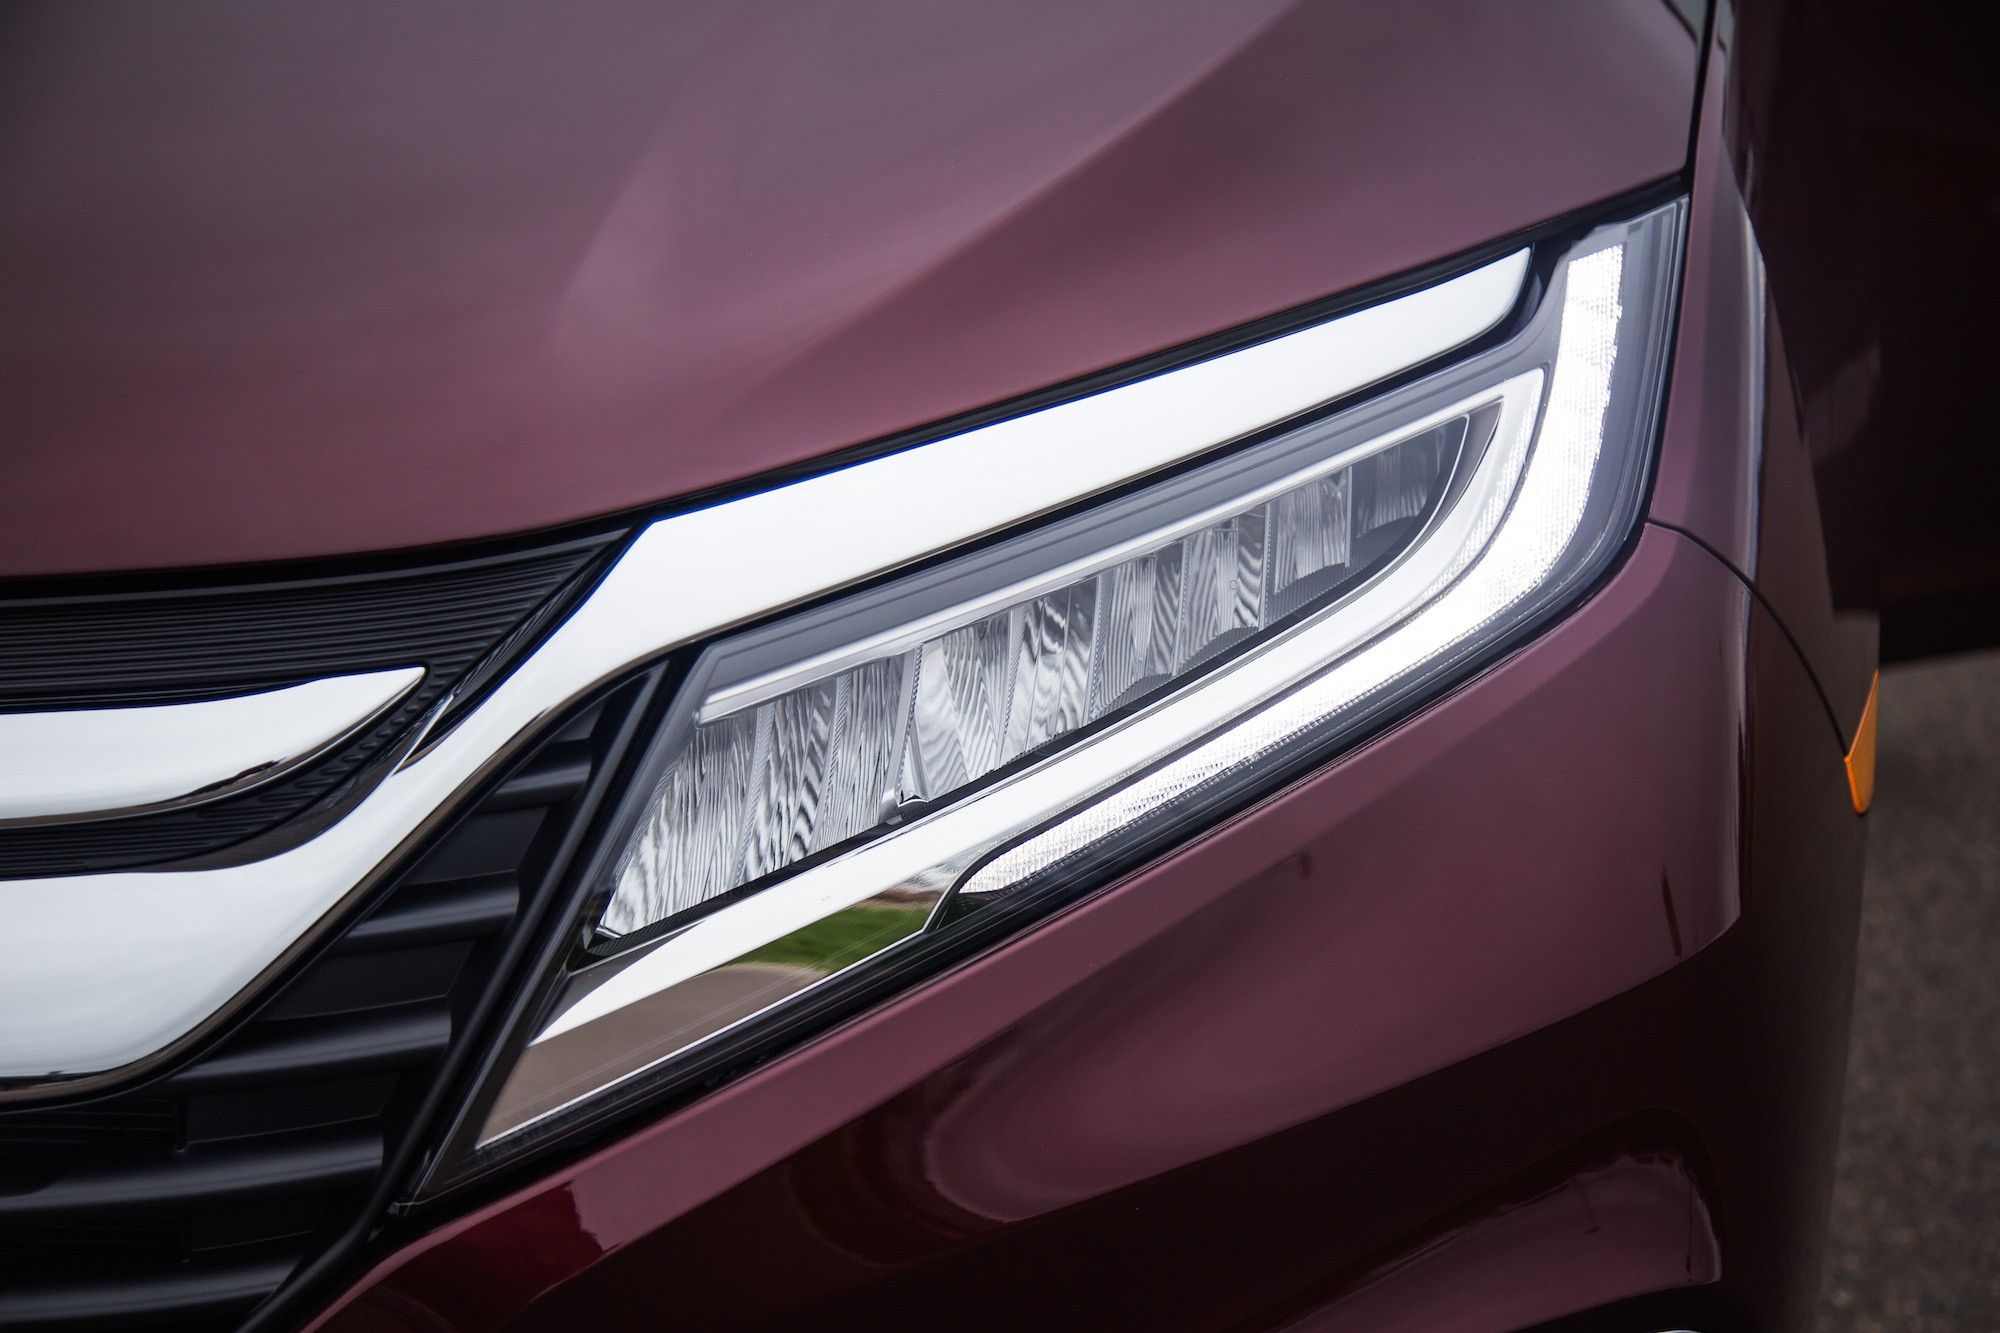 Regal Led Headlamp Honda Odyssey First Drive Review Car Reviews Car And Html